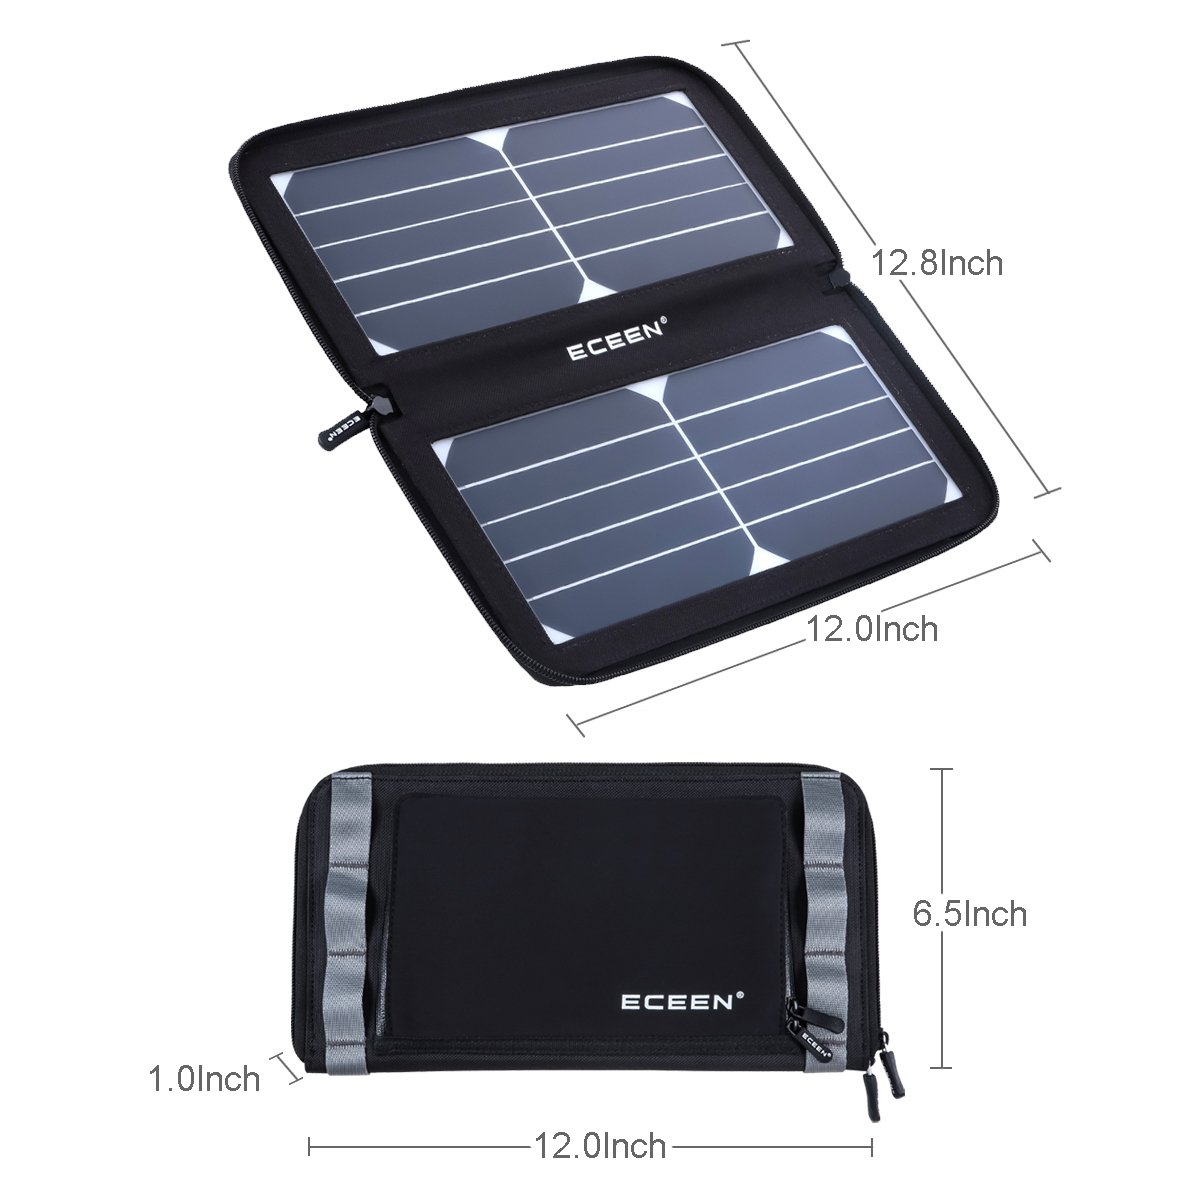 ECEEN Folding Solar Panel Phone Charger With USB Port,Zipper Pack for iPhone, iPad, iPods, Samsung, Android Smartphones Speaker Gopro All 5V USB-Charging Devices (Black) by ECEEN (Image #2)